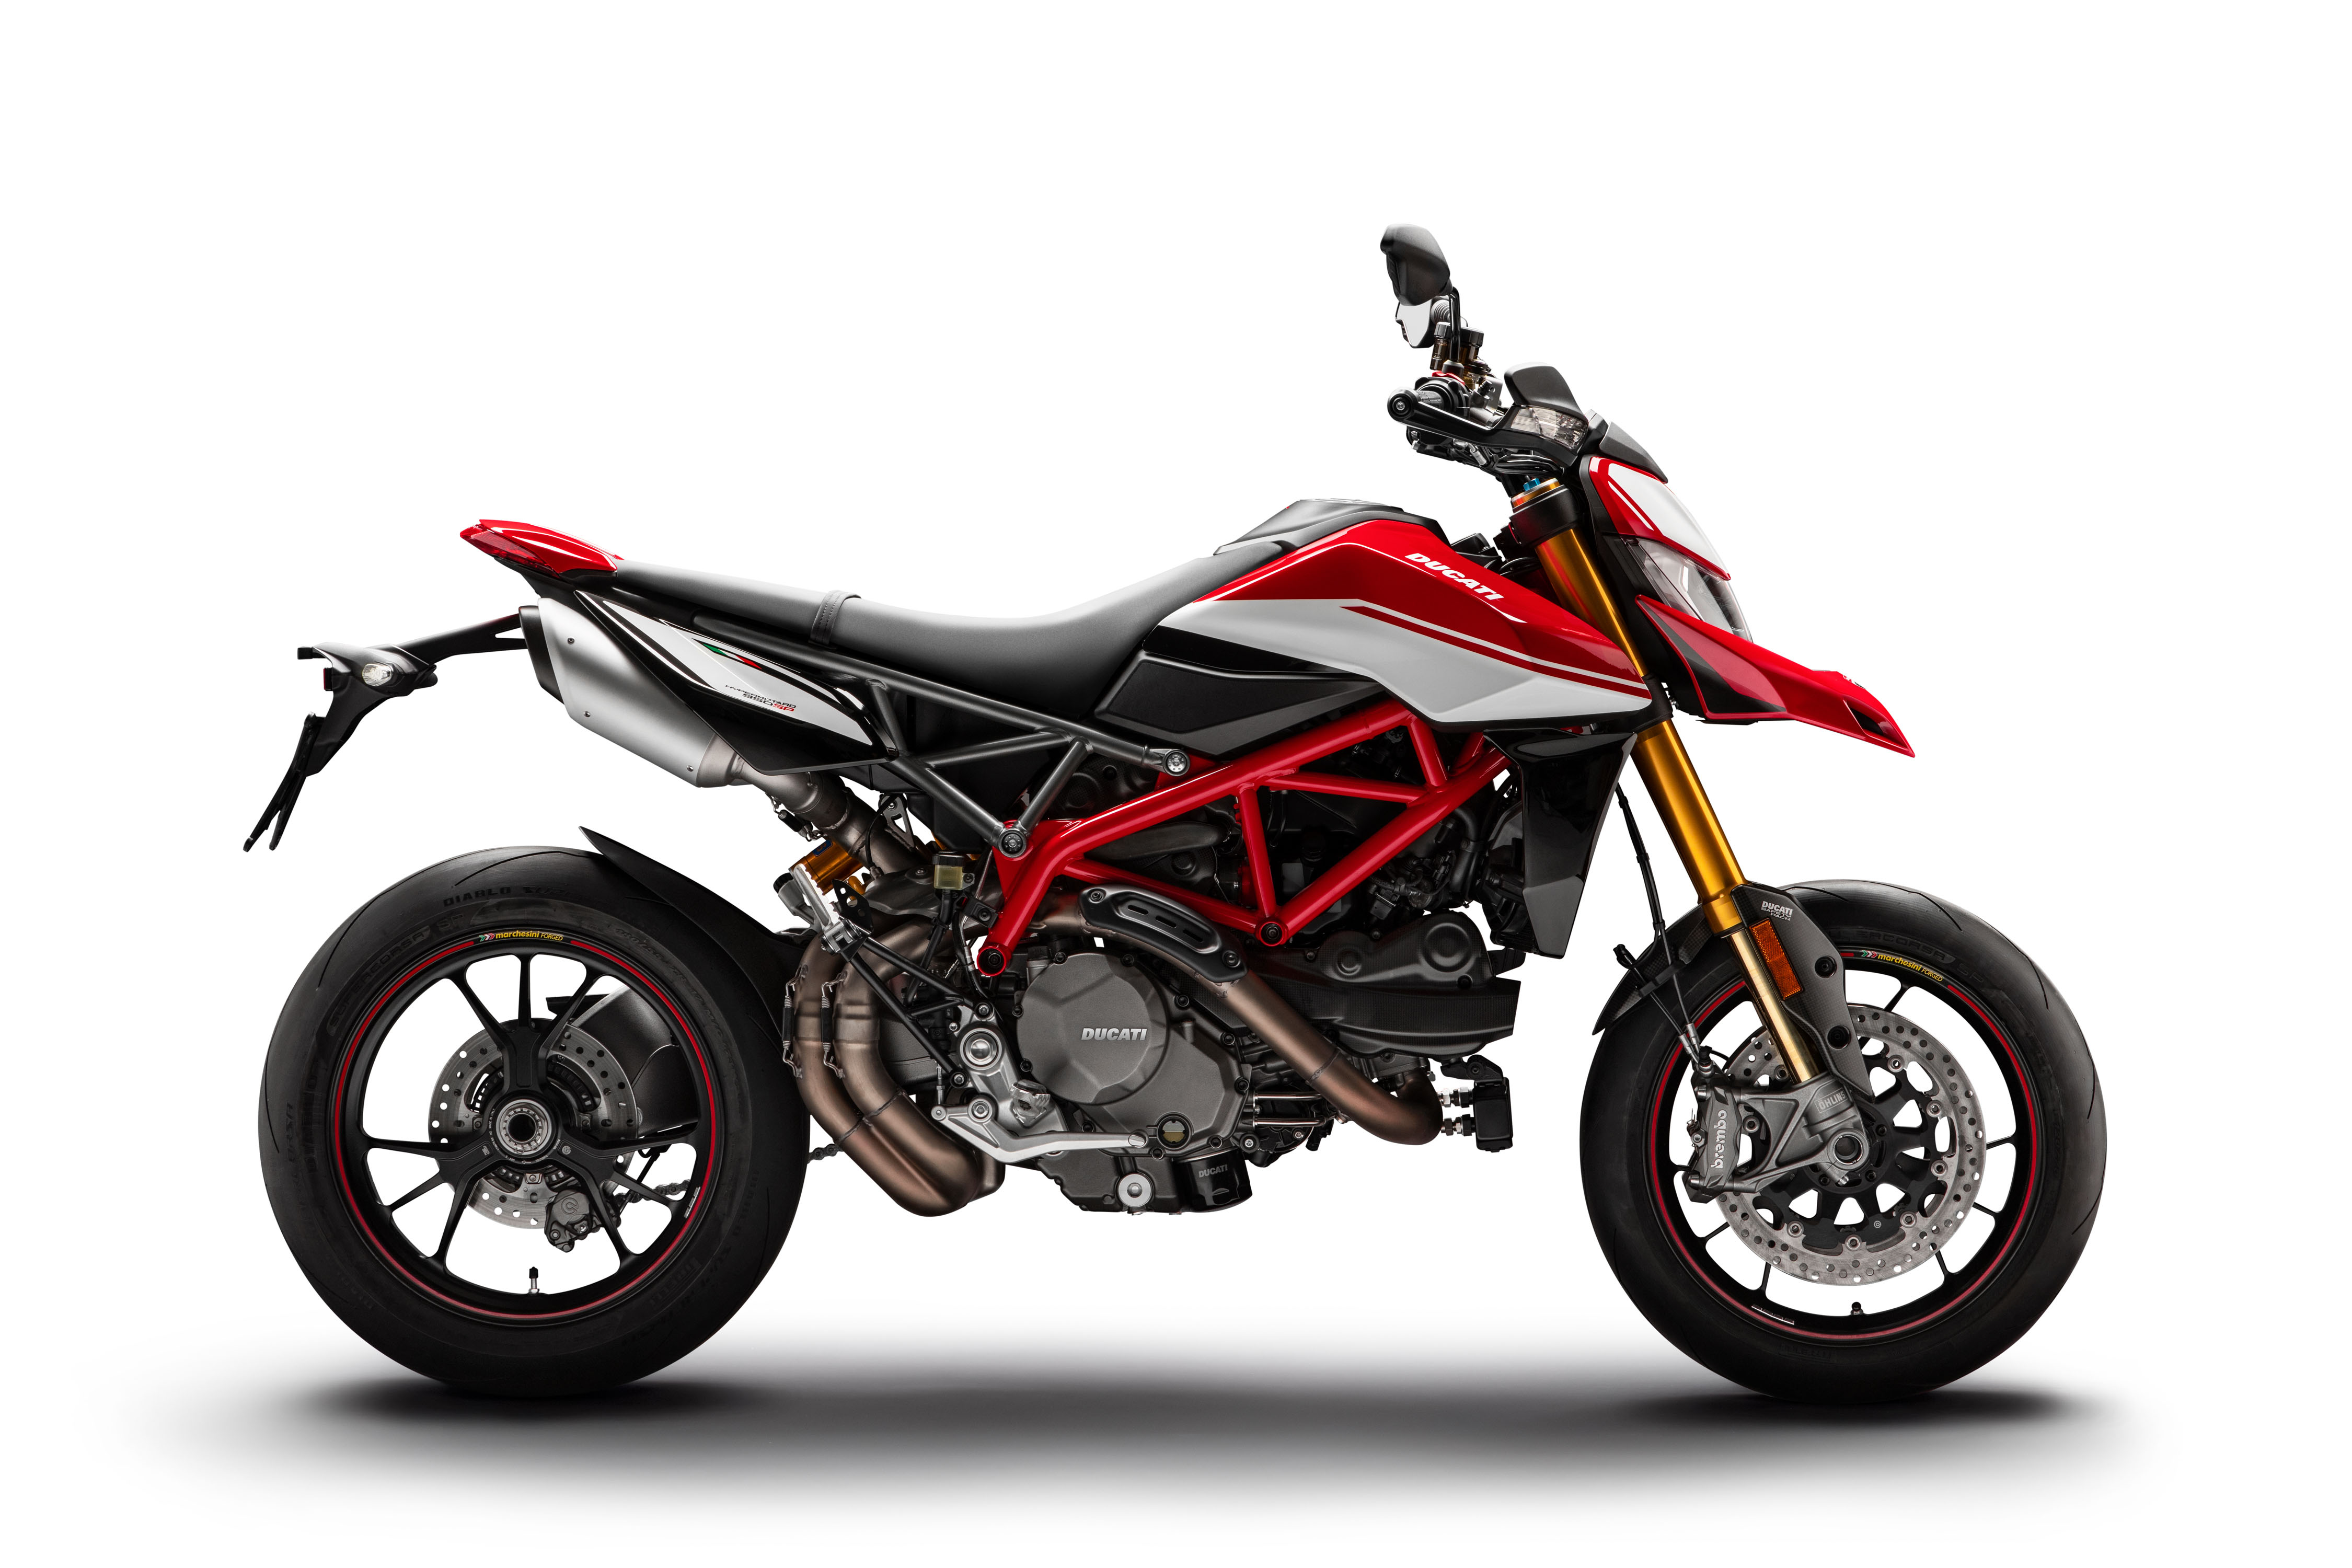 2019 Ducati Hypermotard 950 First Look - Motorcycle.com